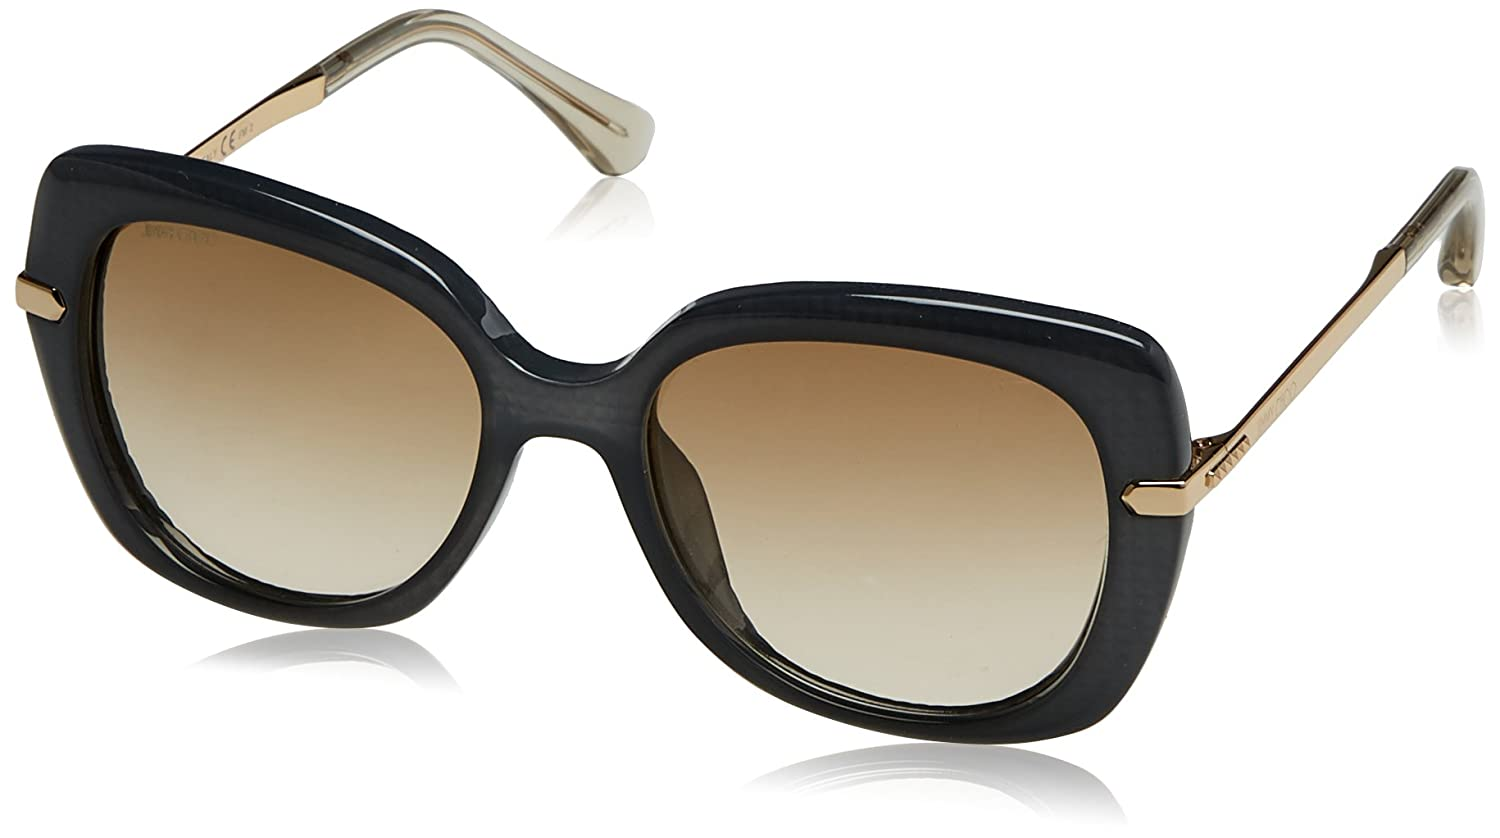 a9a370c1313 Jimmy Choo Ludi S 0OOK Gray Rose Gold Square Sunglasses at Amazon Men s  Clothing store